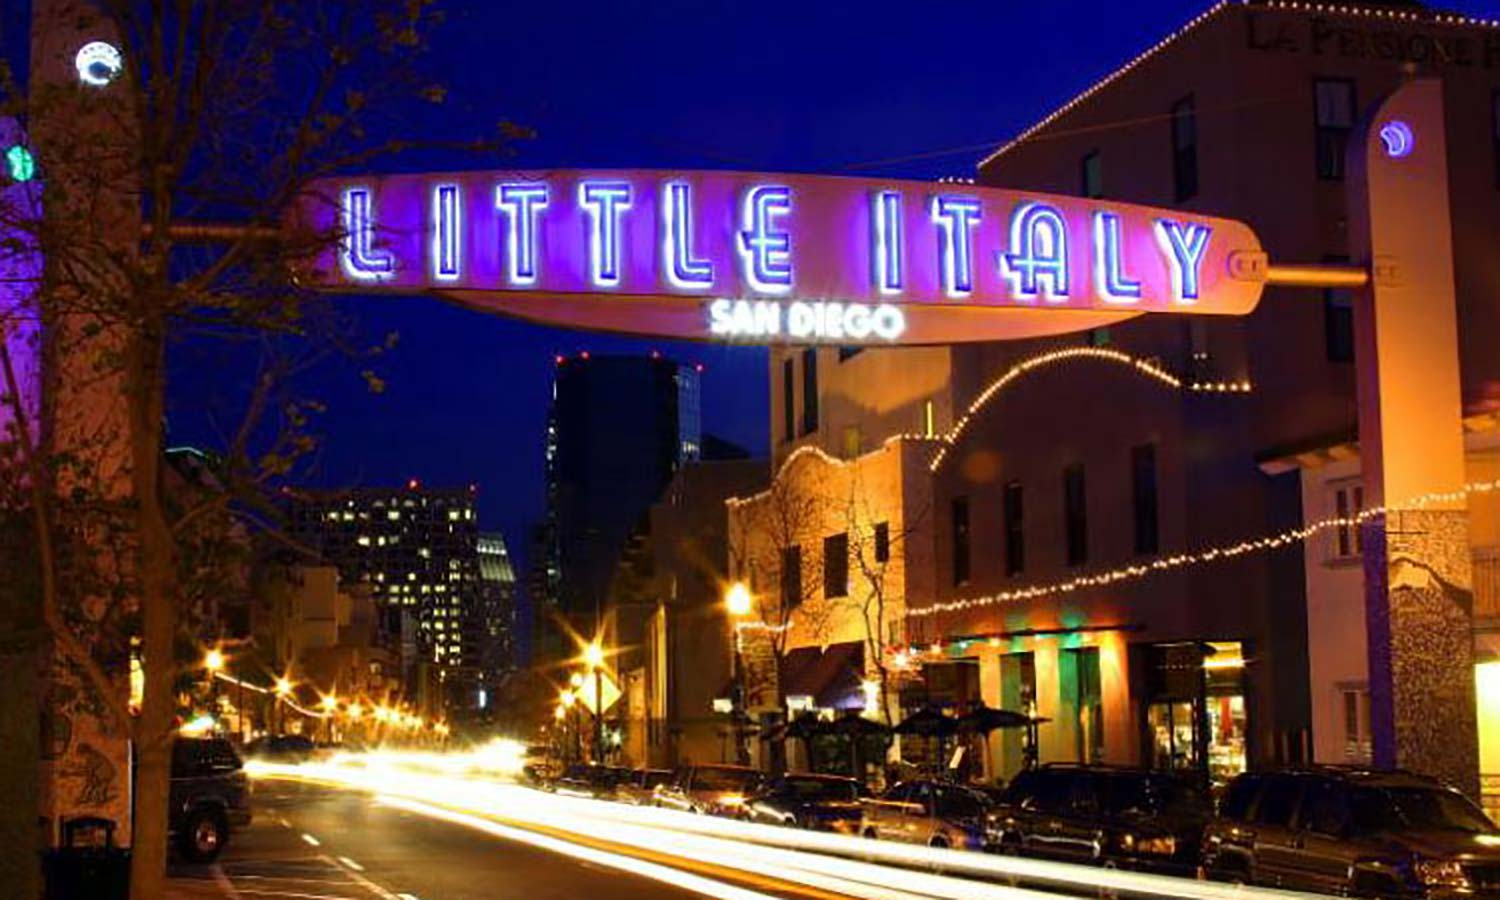 Little Italy Condos For Sale - Little Italy San Diego